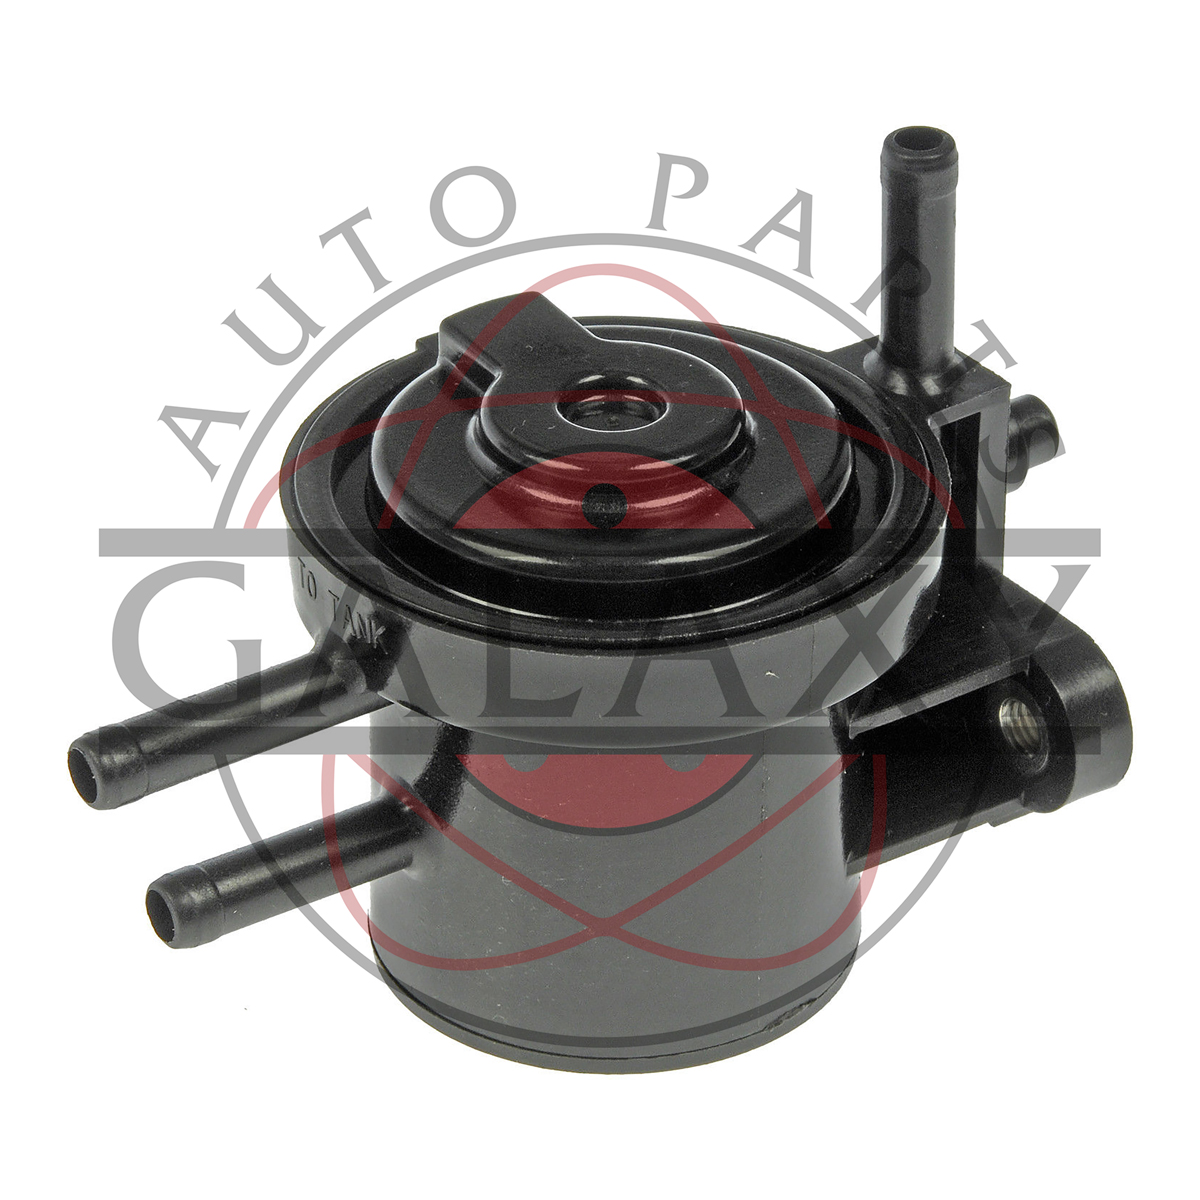 [Replace Evap Canister On A 1995 Acura Integra]